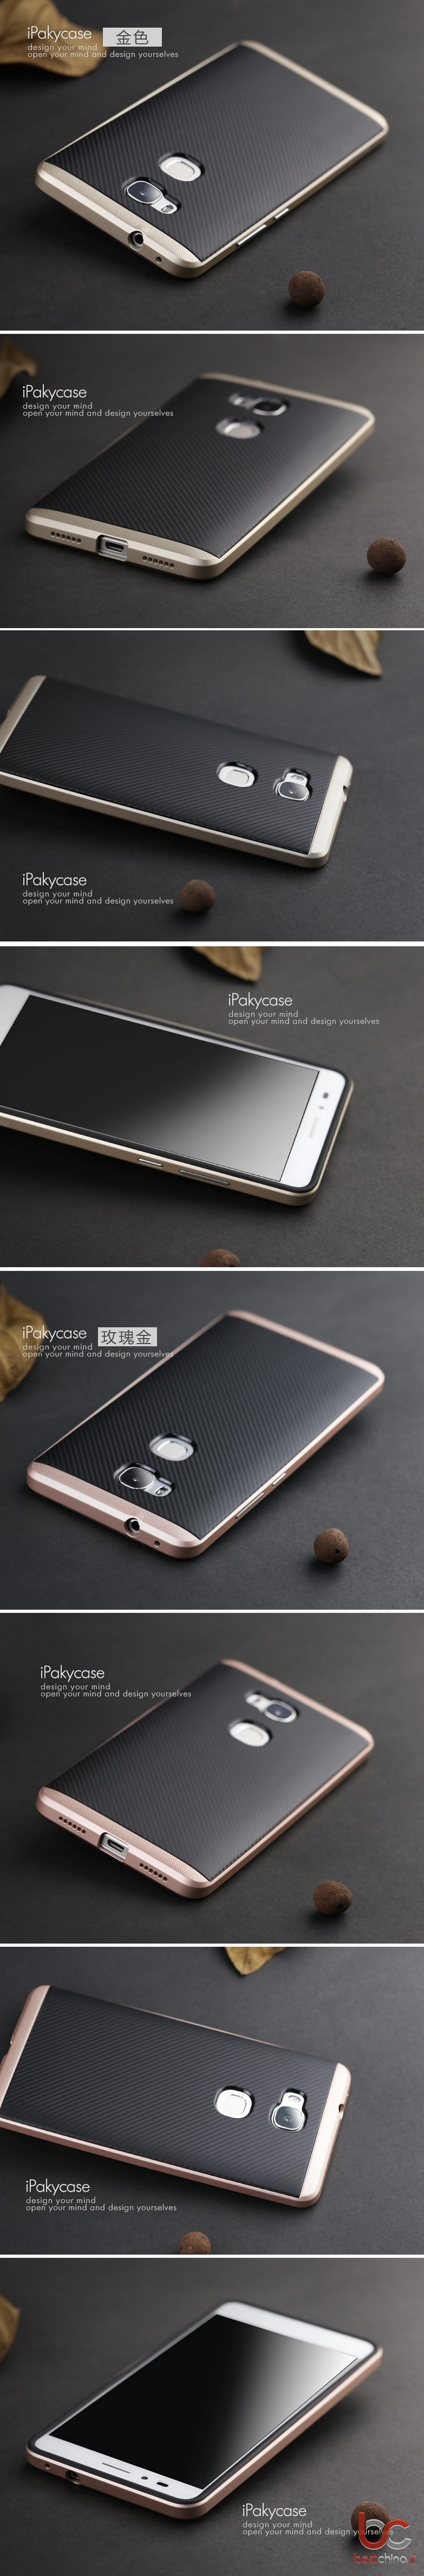 Huawei Honor 5X iPaky Back Cover (2)